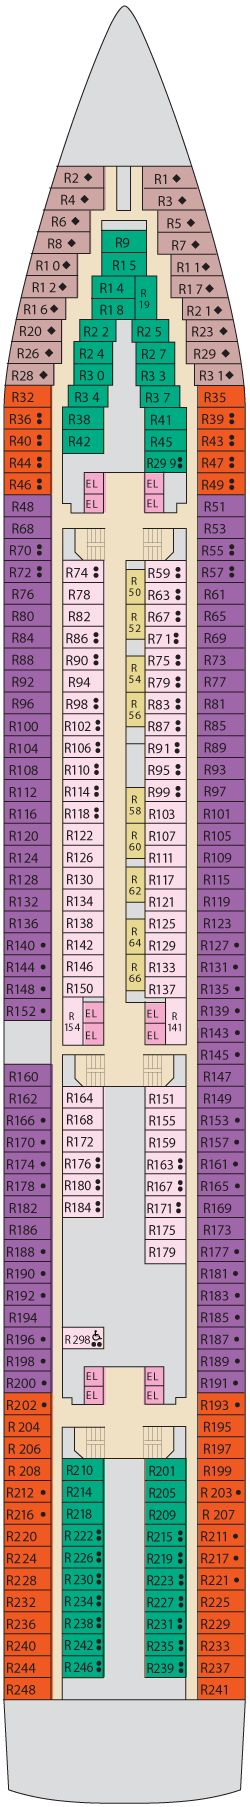 carnival elation deck layout - Google Search GETTING READ ...